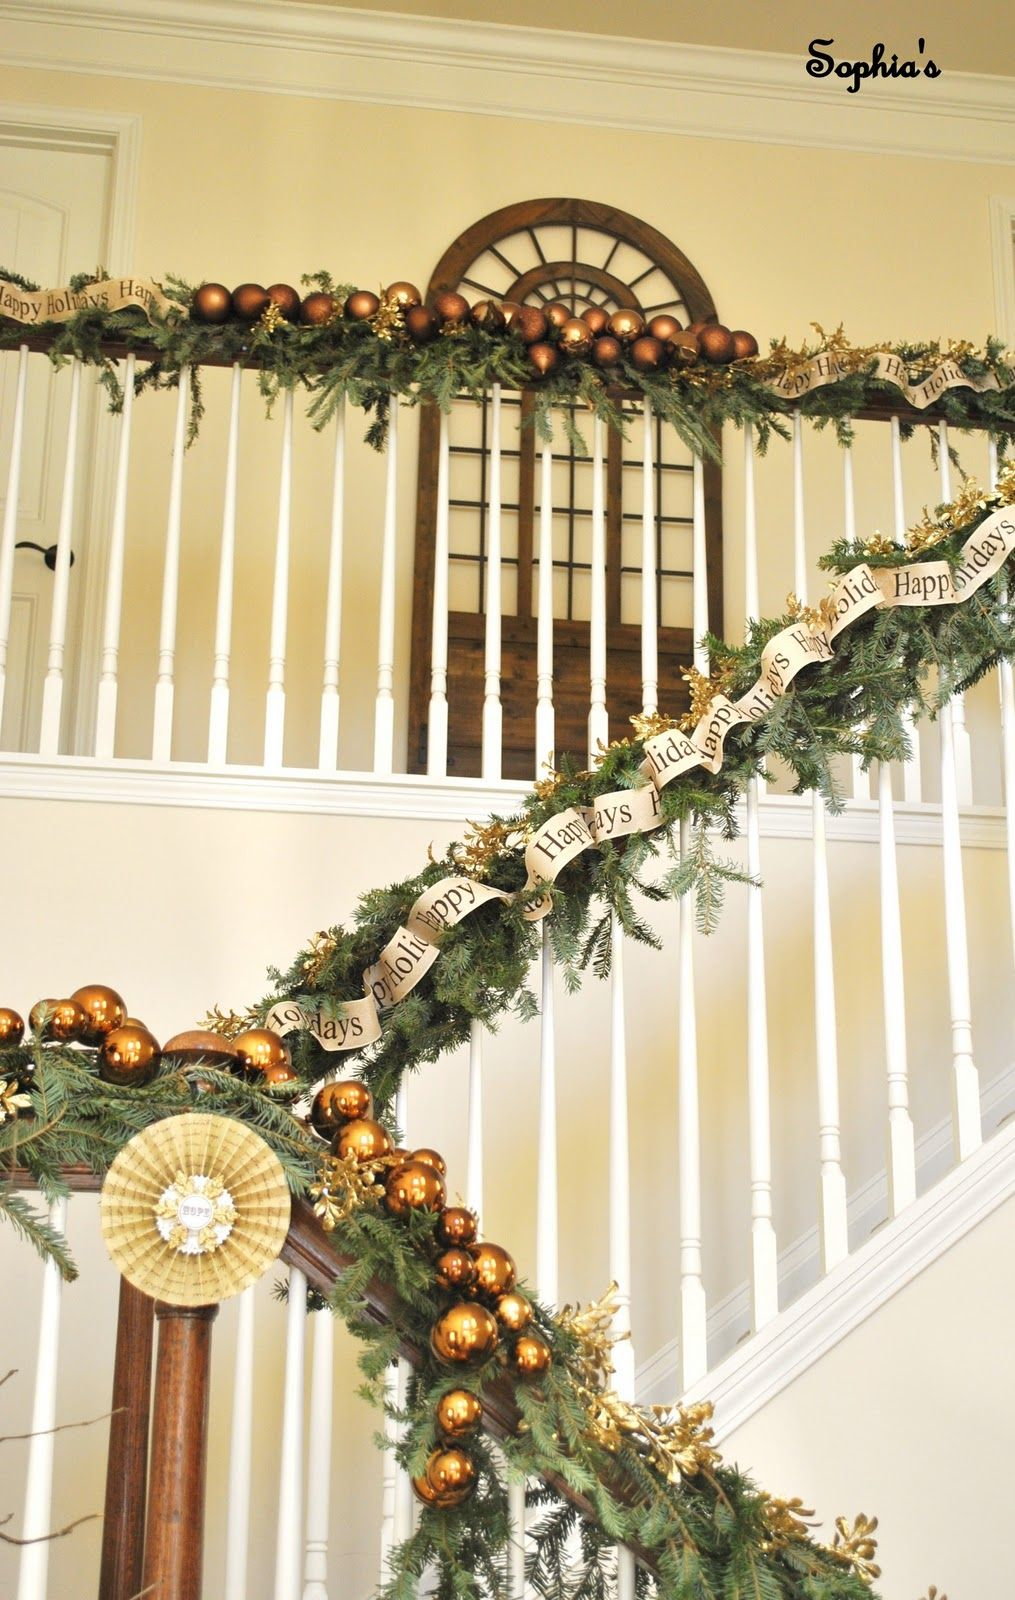 stairs banister christmas decoration - Christmas Decorations For Stairs Banisters